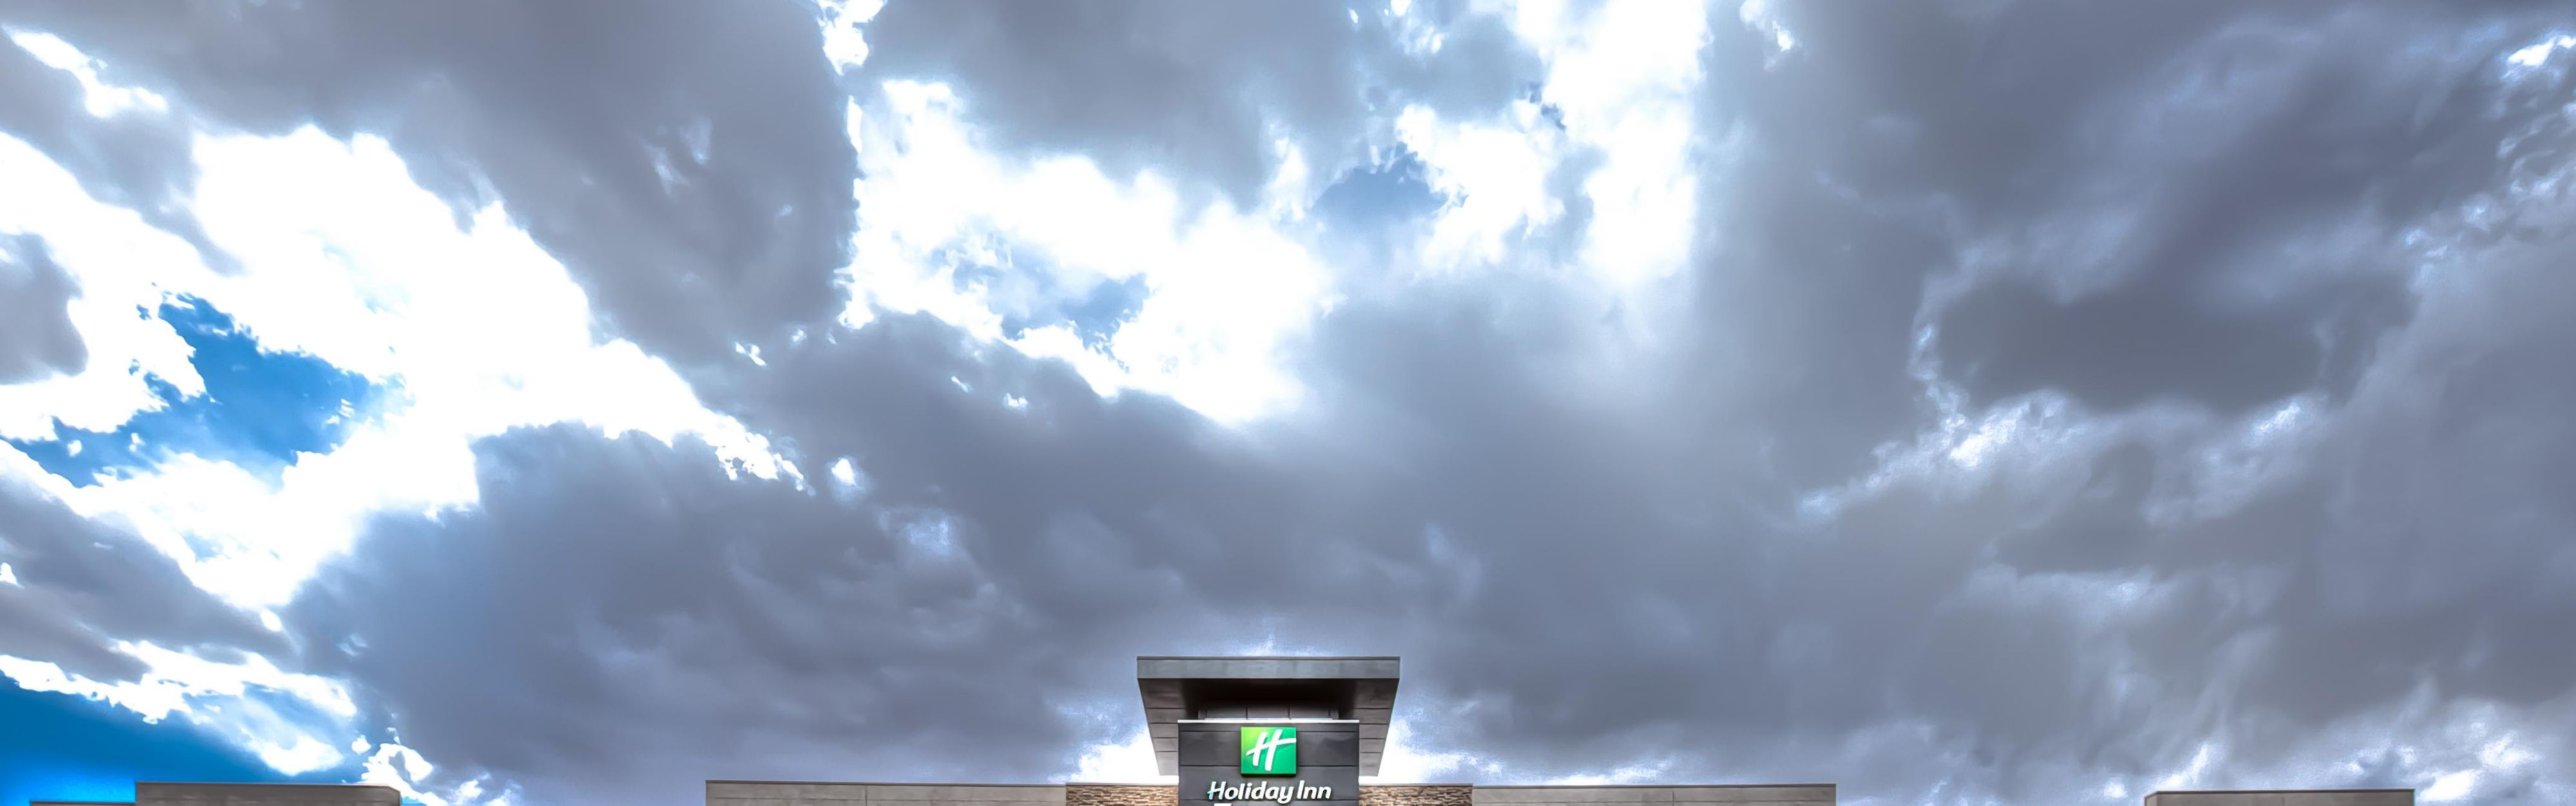 Holiday Inn Express & Suites Amarillo West image 0